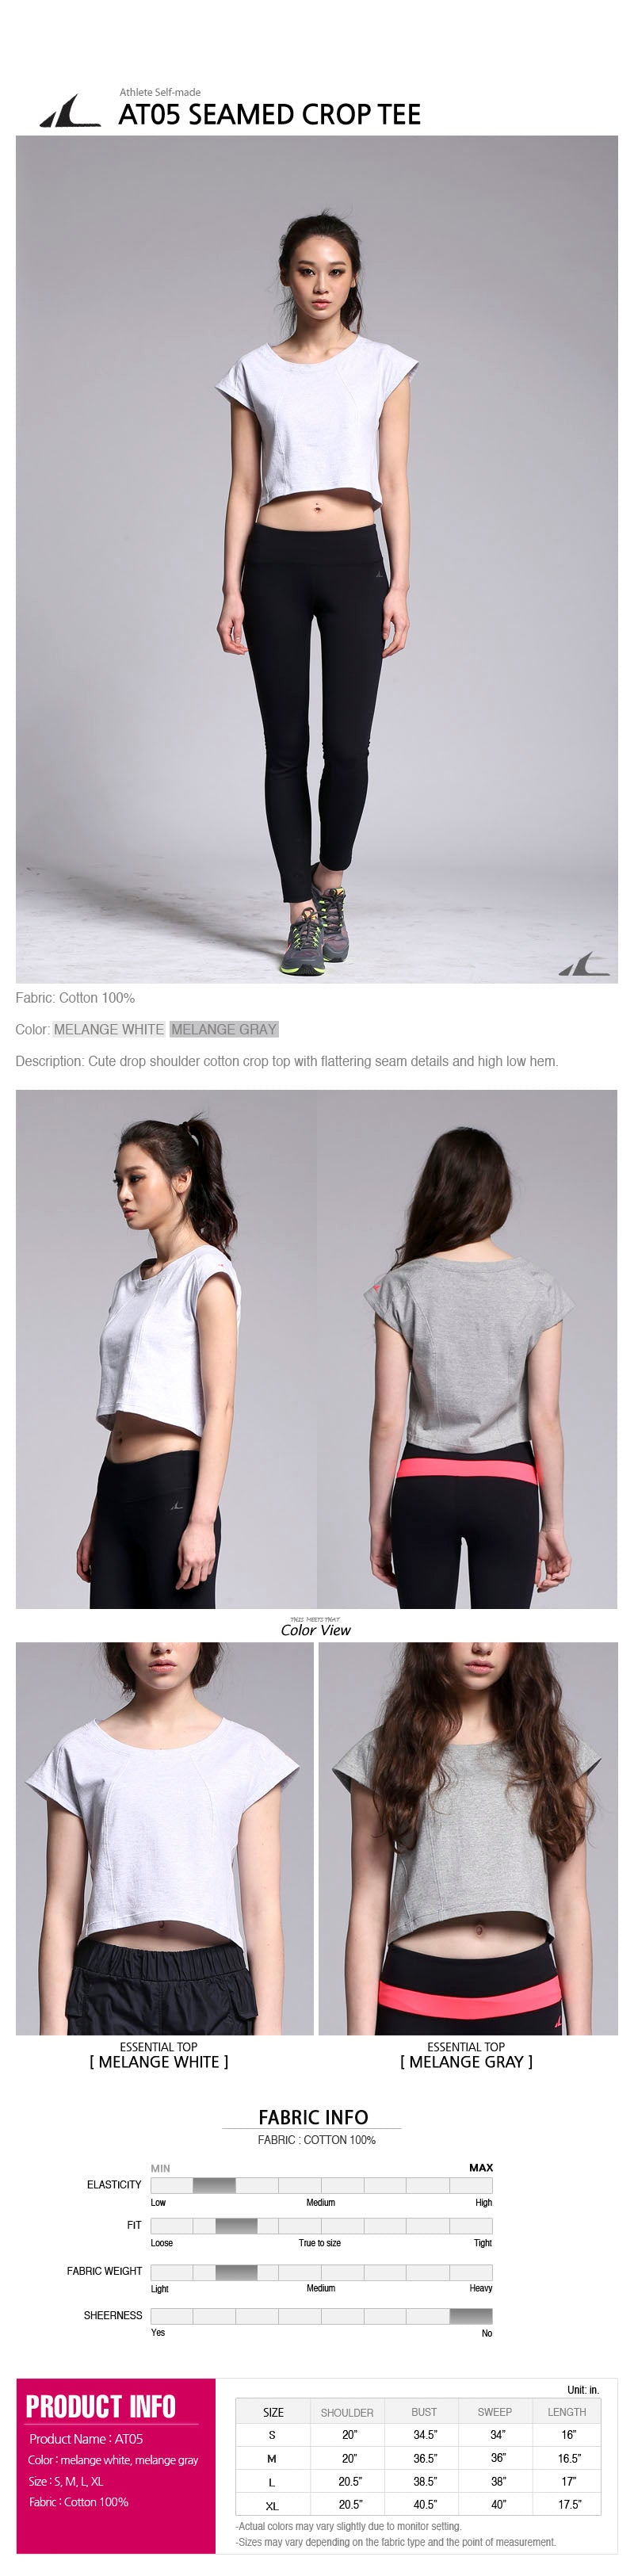 ATHLETE Women's Ria Crop Tee, Style AT05